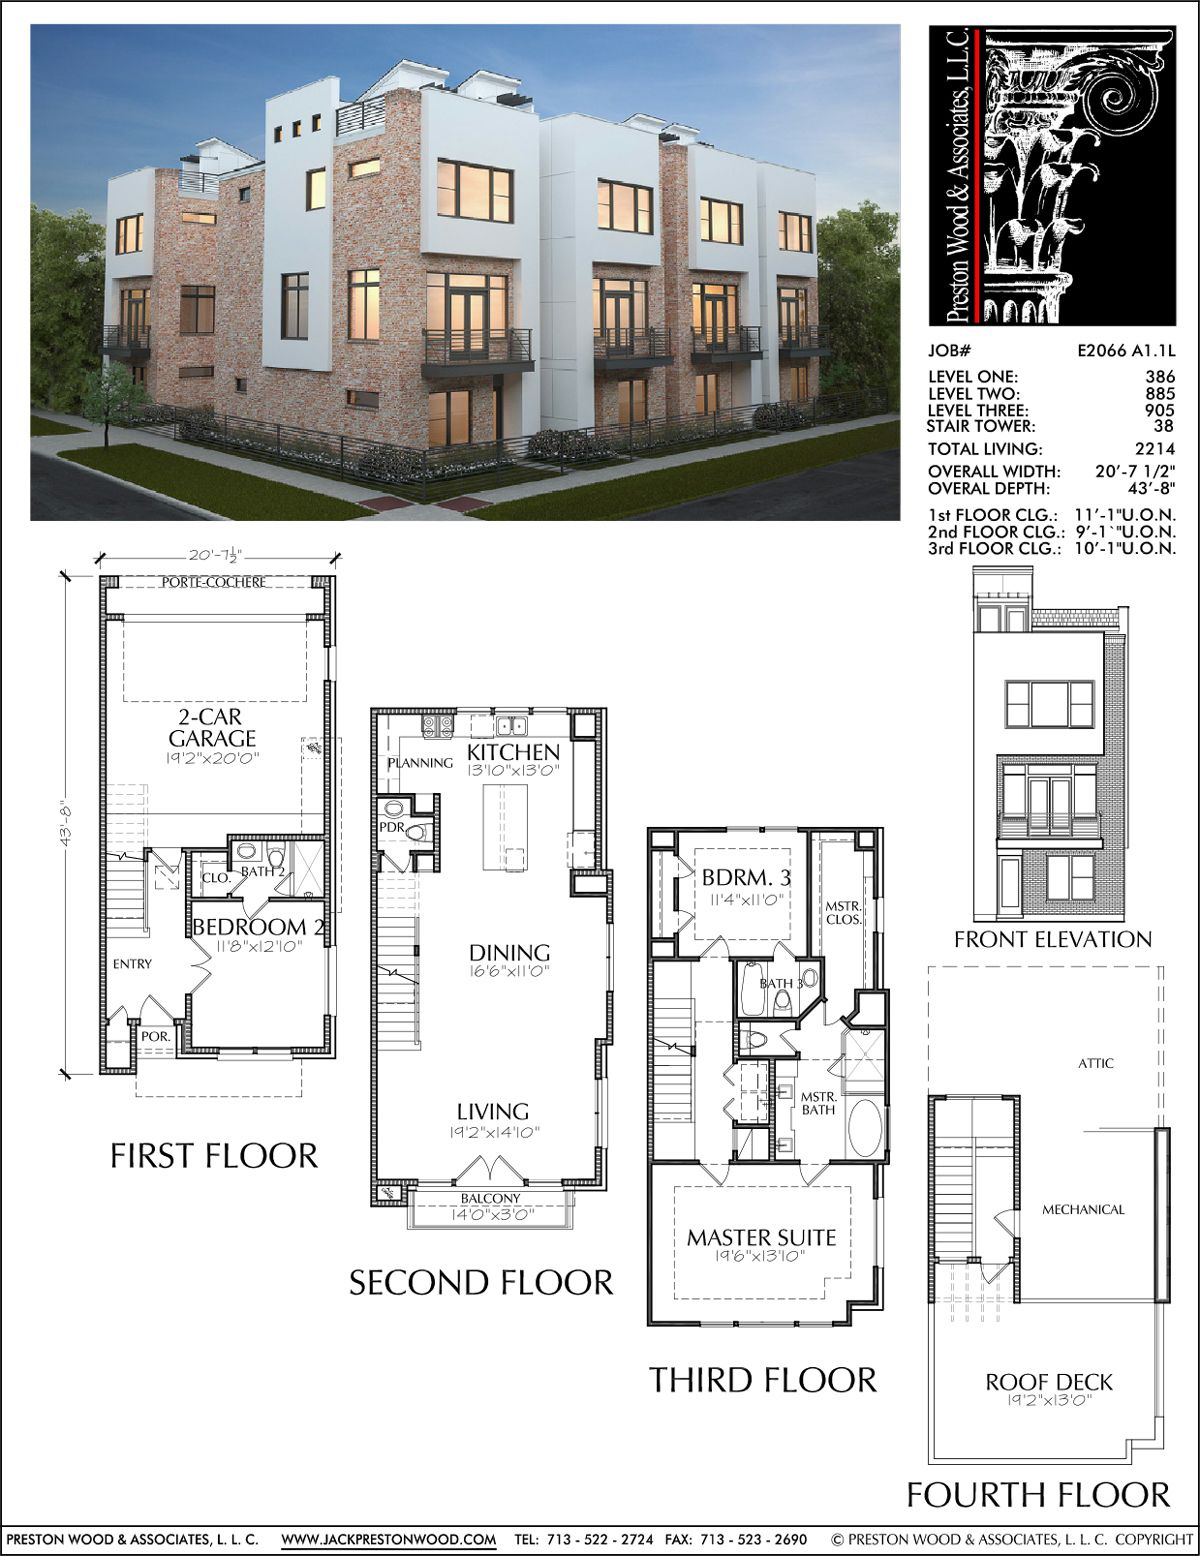 3 1 2 Story Townhouse Plan E2066 A1 1 Town House Floor Plan Townhouse Designs Narrow Lot House Plans